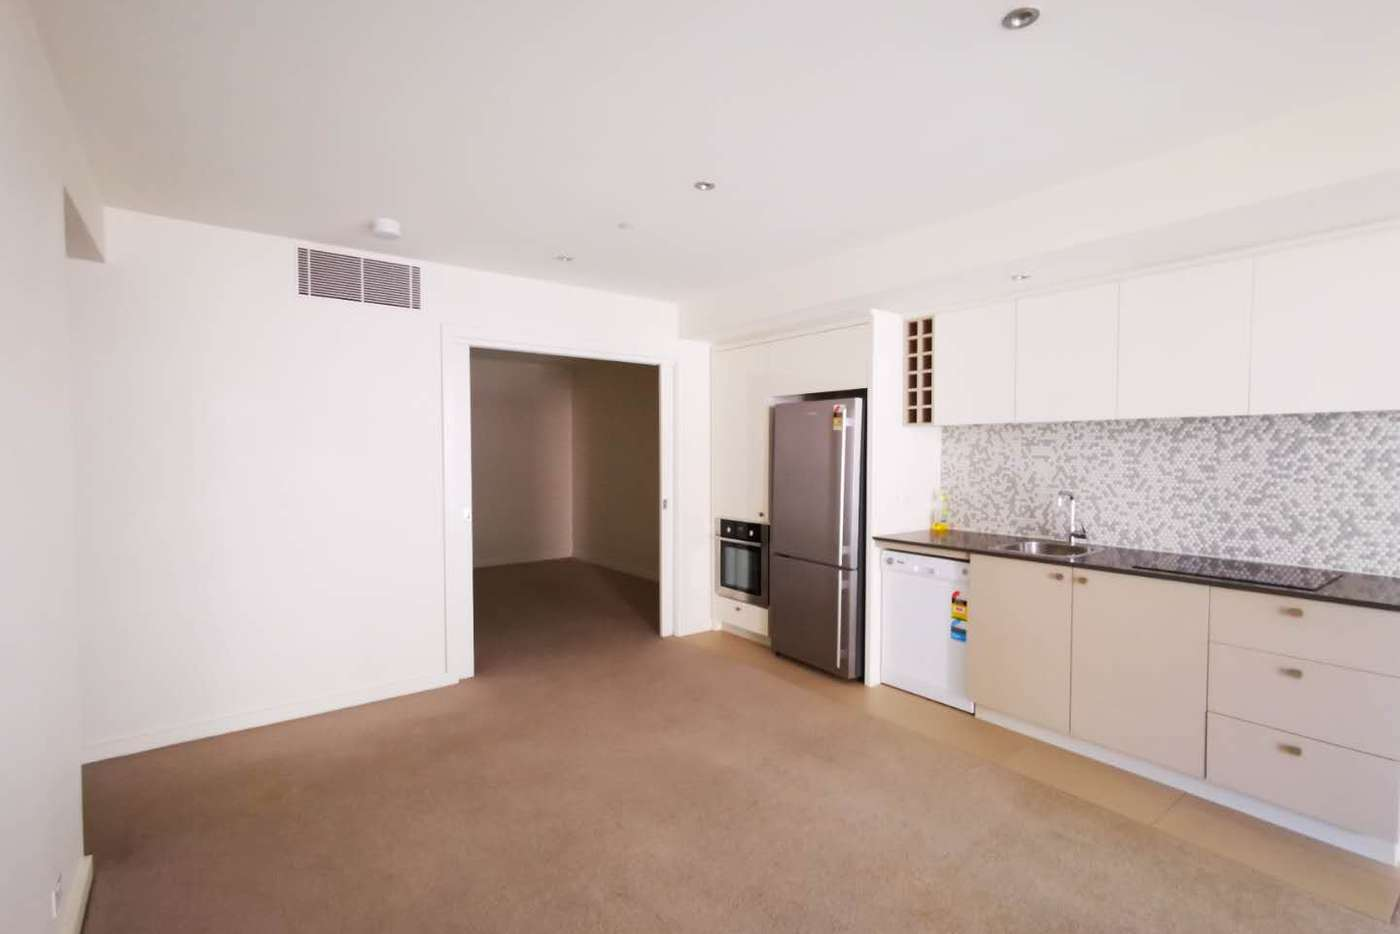 Sixth view of Homely apartment listing, 1H/8 WATERSIDE PLACE, Docklands VIC 3008